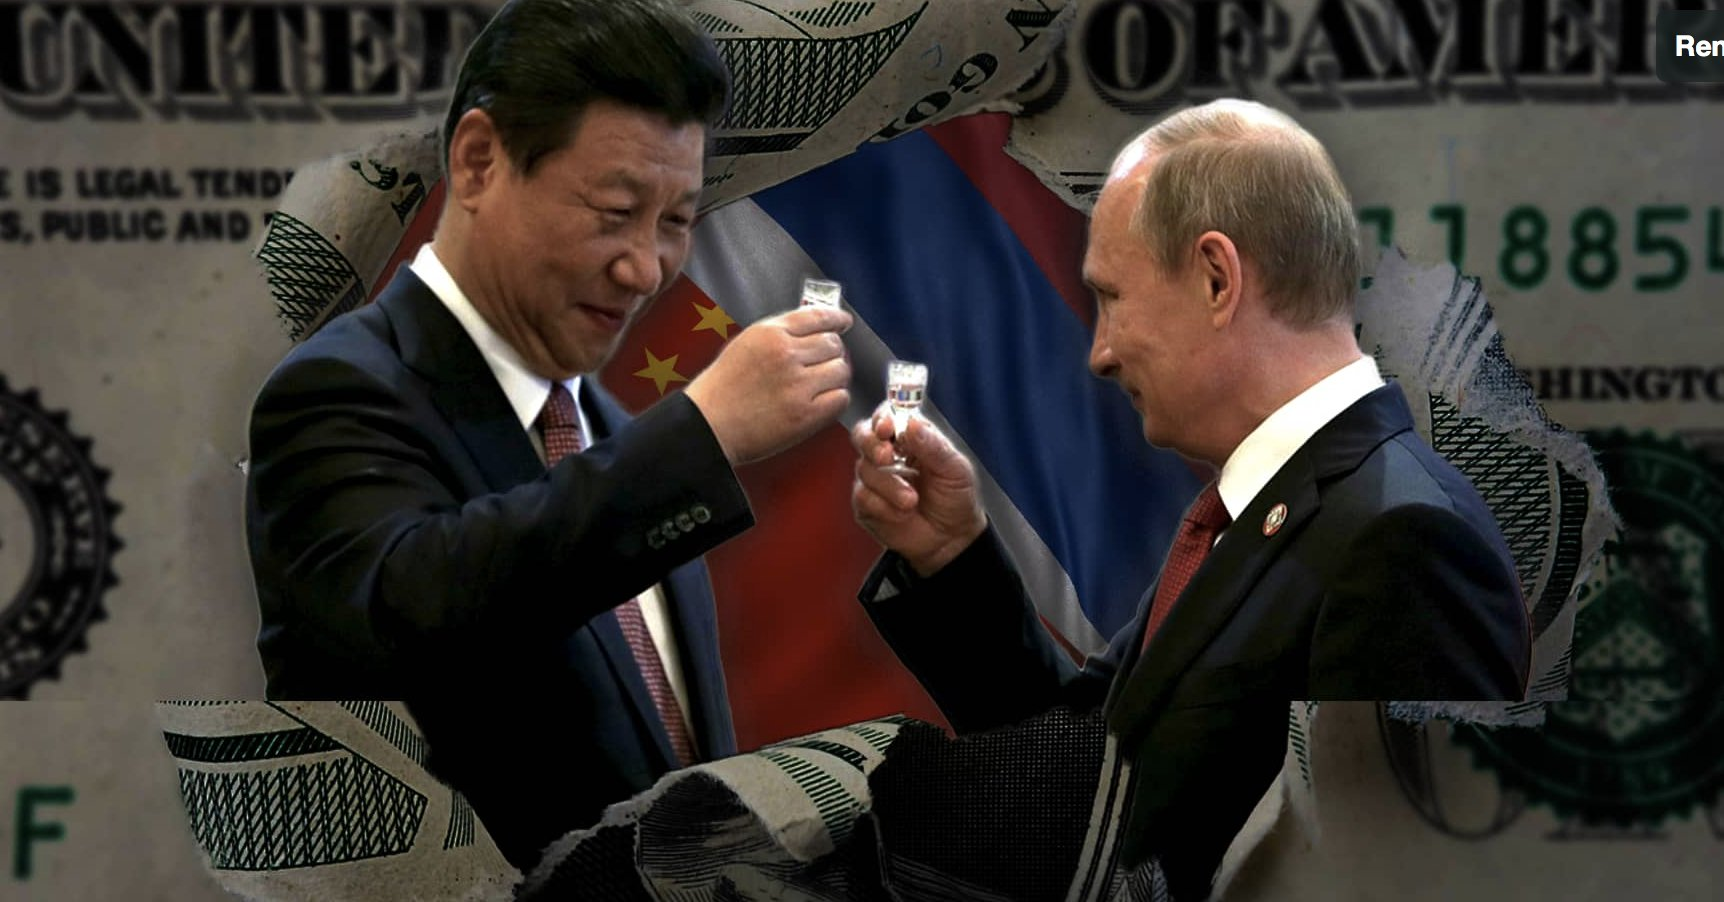 De Dollarization: China and Russia Lay Ground for Alternative to Dollar System